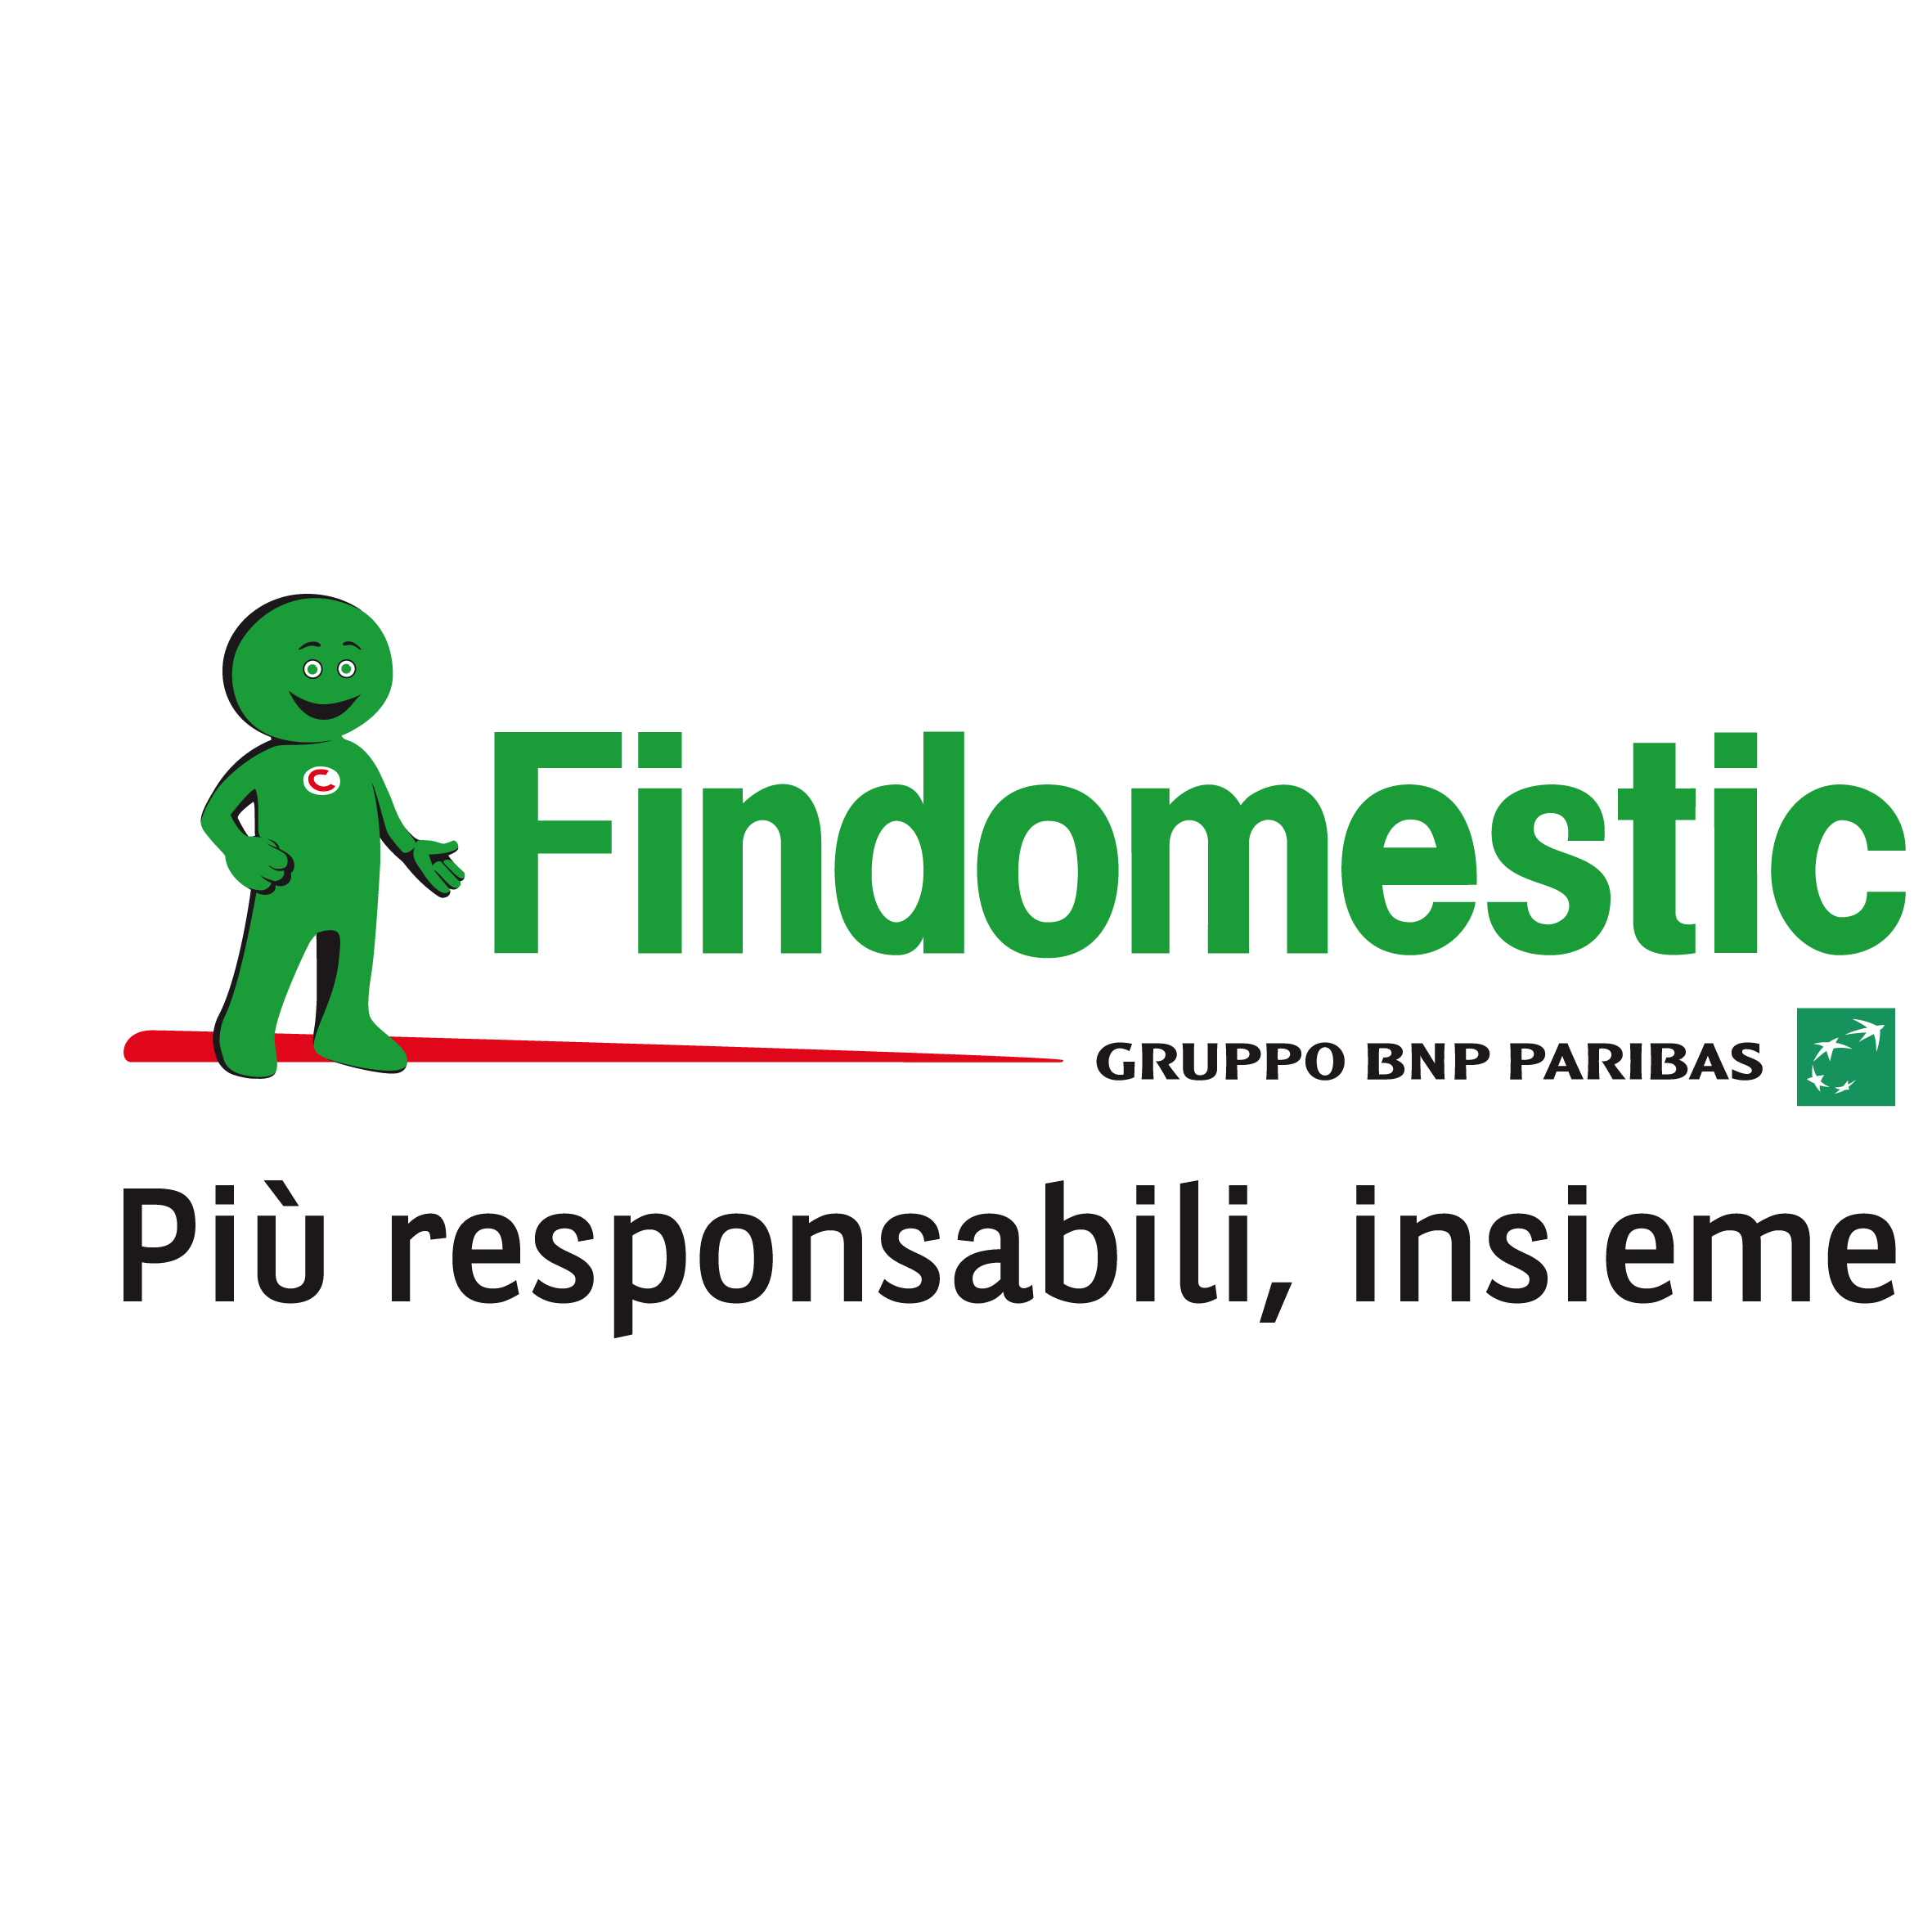 Findomestic